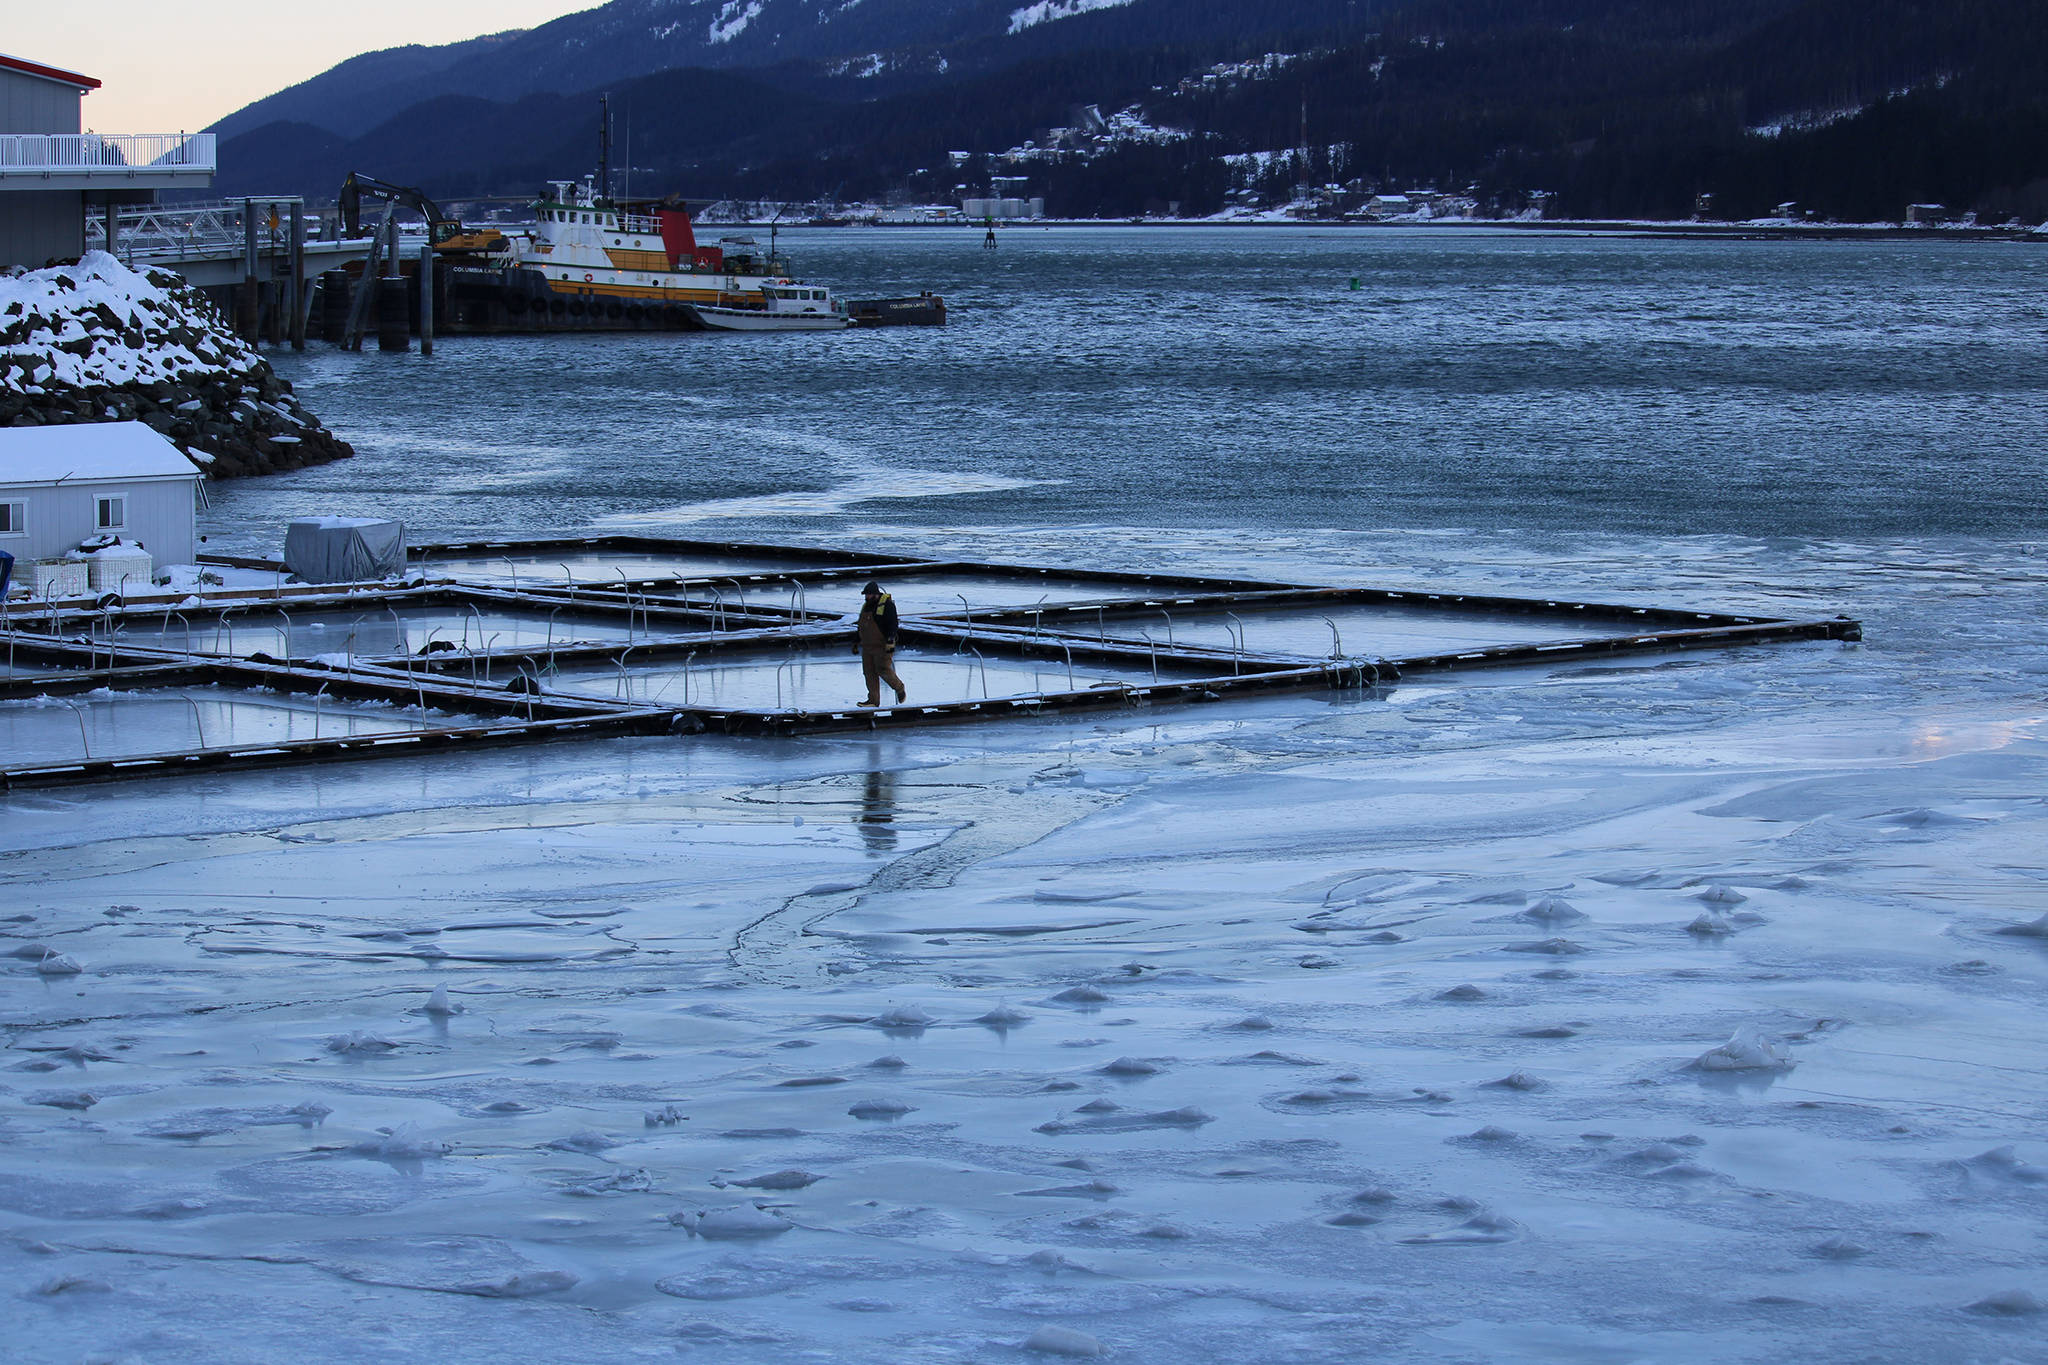 A worker walks on the pier near Douglas Island Pink and Chum Inc's Macaulay Salmon Hatchery Thursday afternoon. Ice has formed on the Gastineau Channel amid frigid temperatures brought on by a high pressure ridge over mainland Alaska and Western Canada. (Dana Zigmund / Juneau Empire)